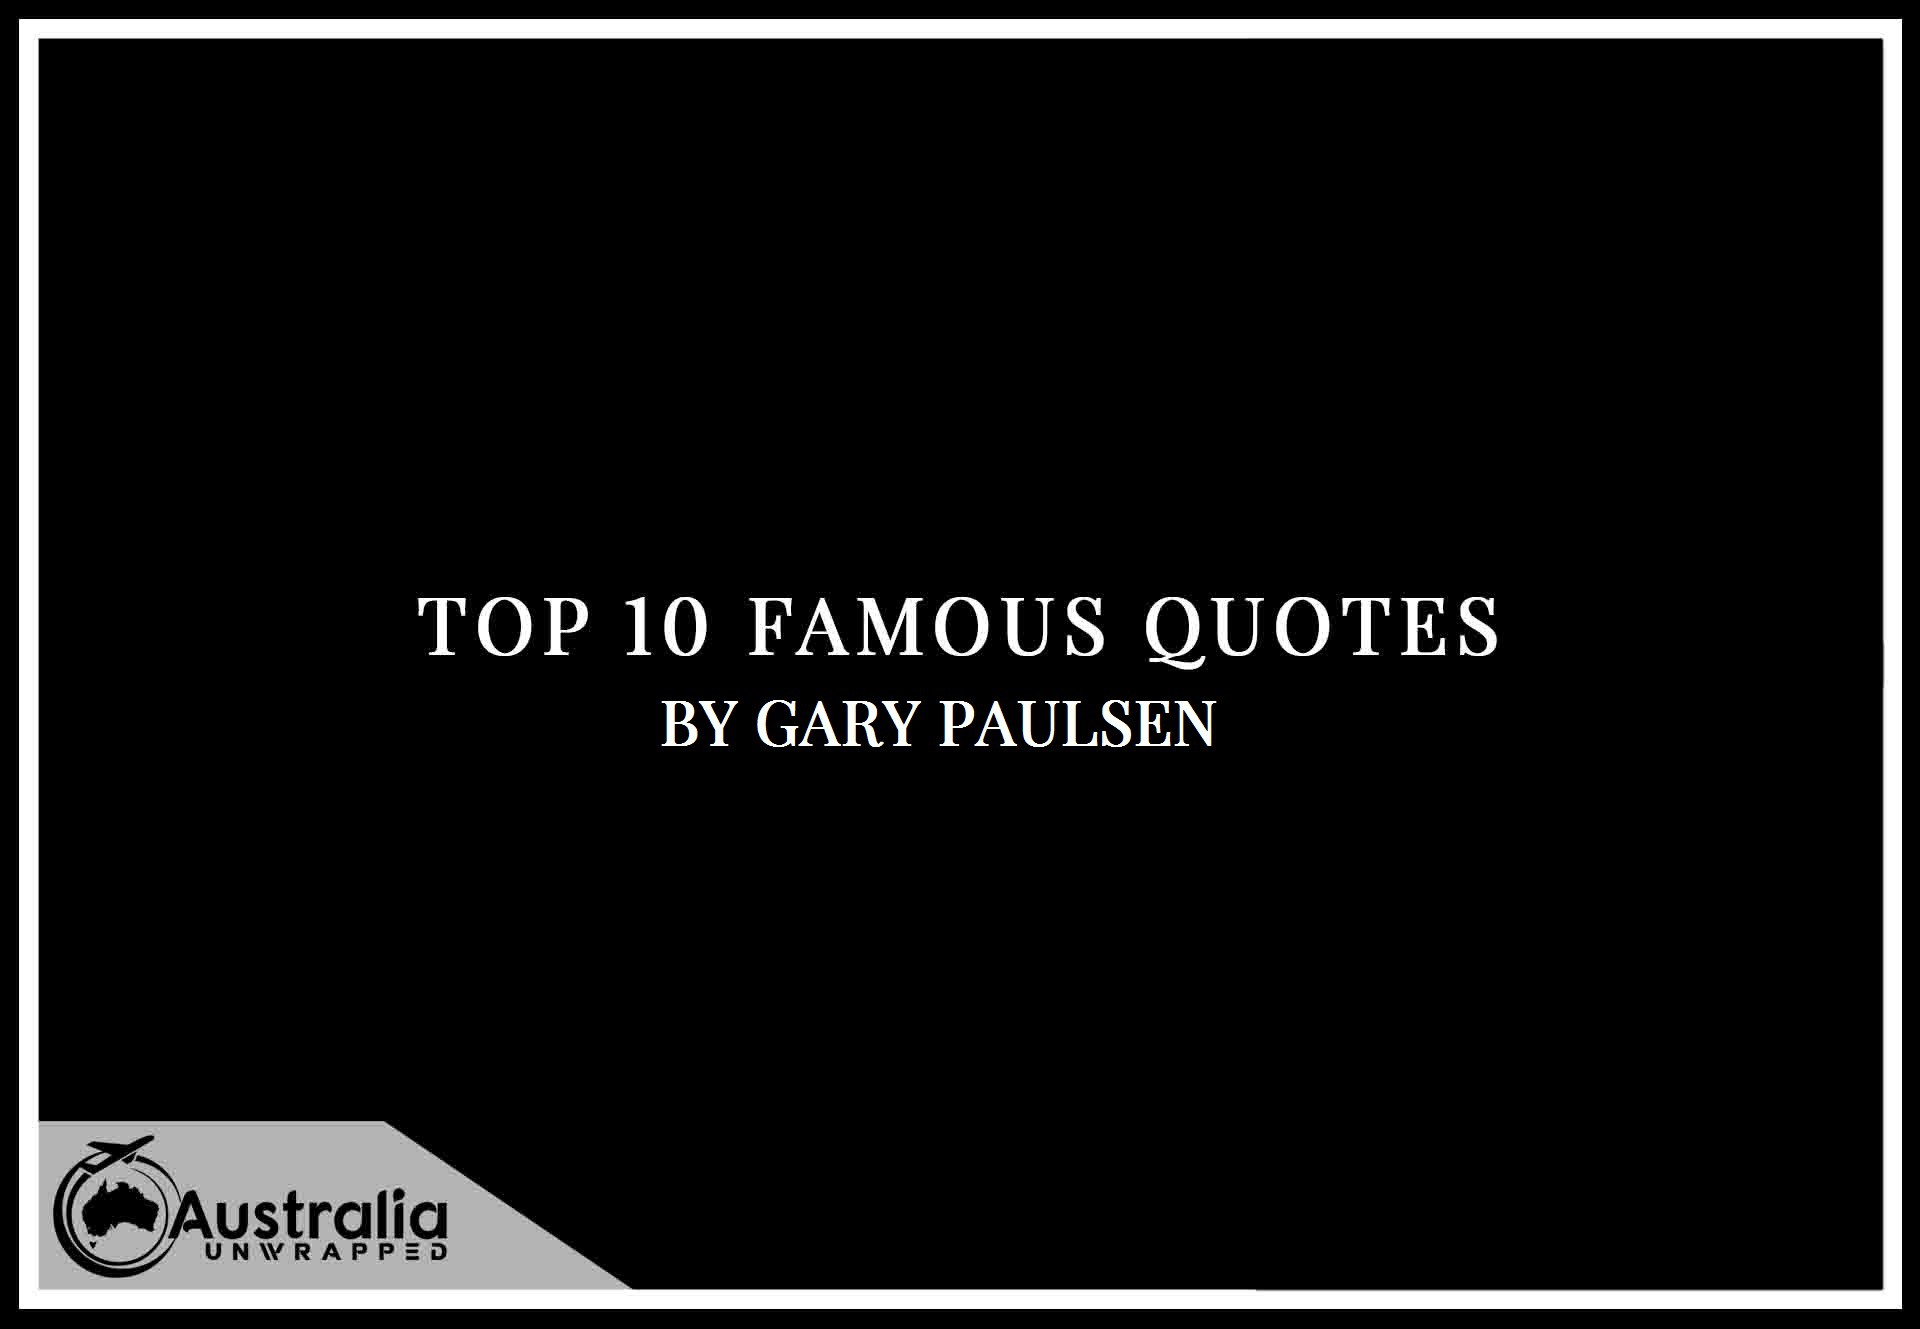 Gary Paulsen's Top 10 Popular and Famous Quotes